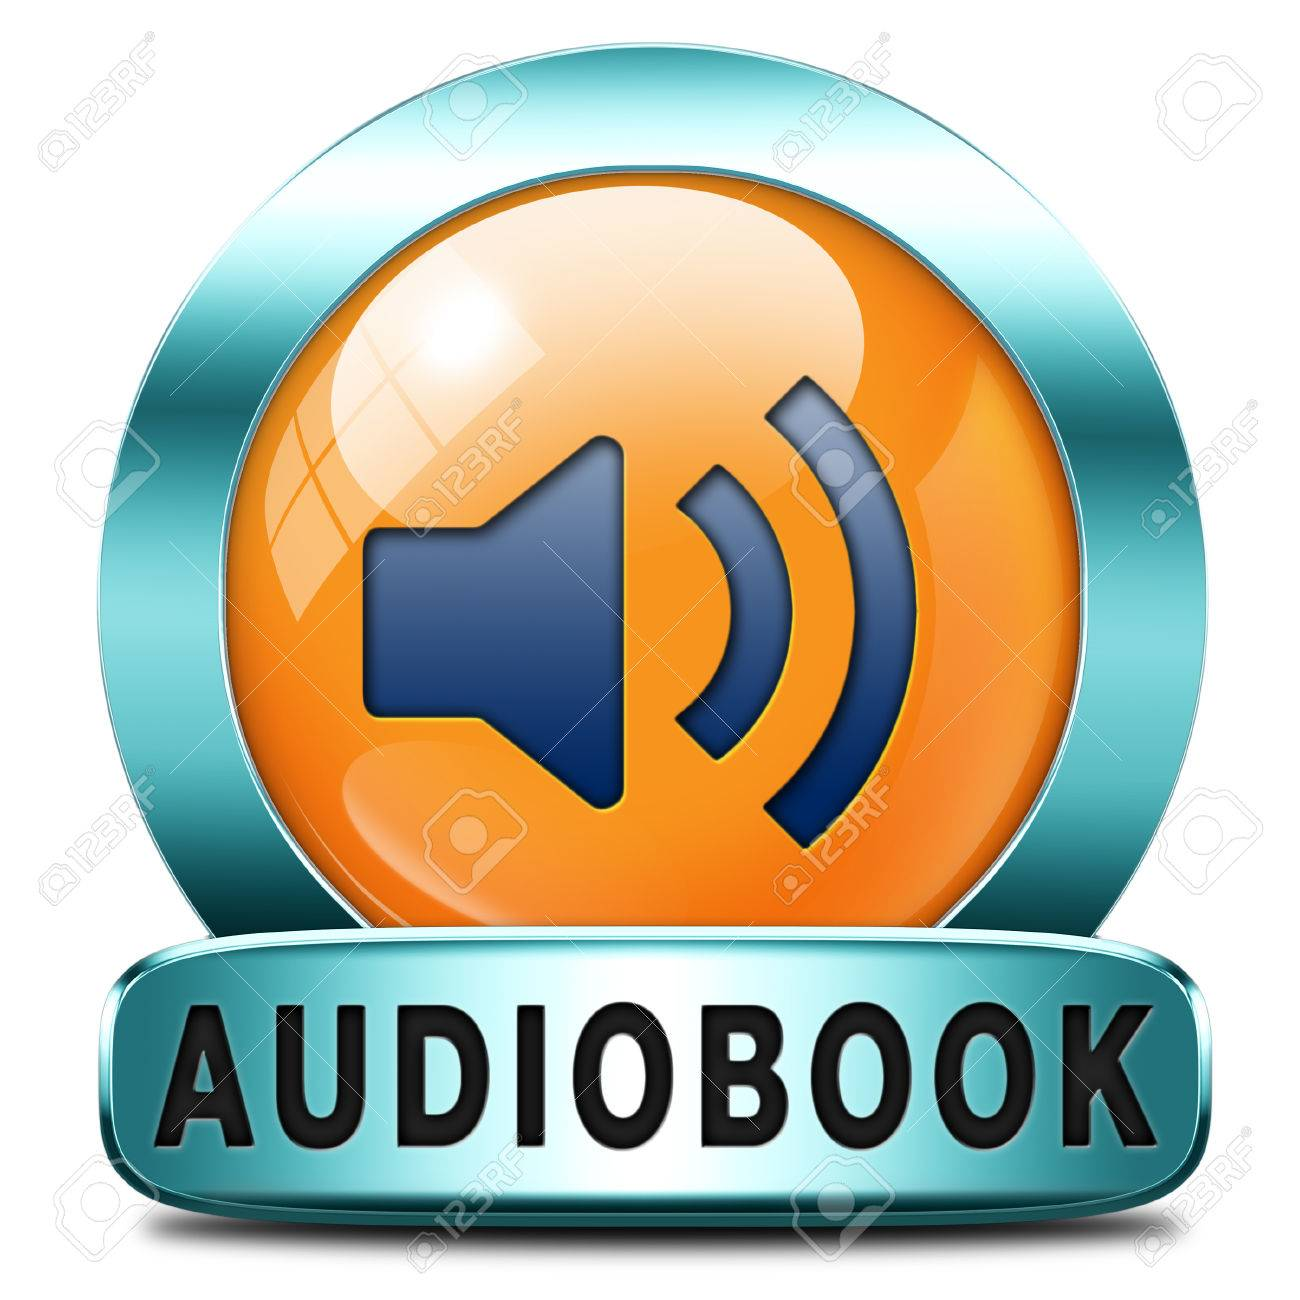 Listen Online Icon Wiring Diagrams Stereo Balance Meter Circuit Diagram Tradeoficcom Audiobook Or Sign Buy And Download Audio Rh 123rf Com